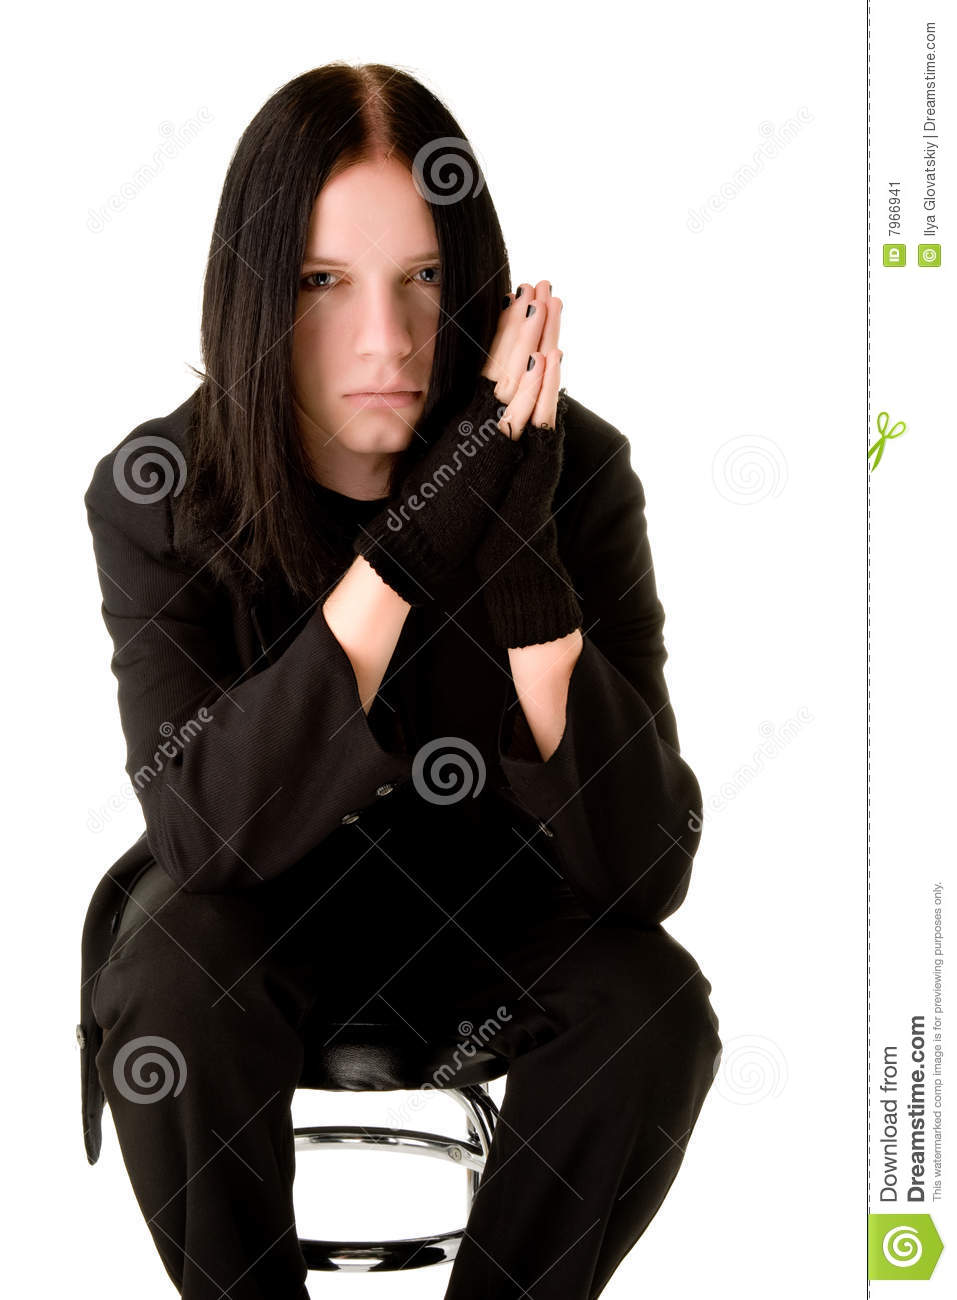 young goth man sitting on a bar chair mr yes pr no 2 728 2